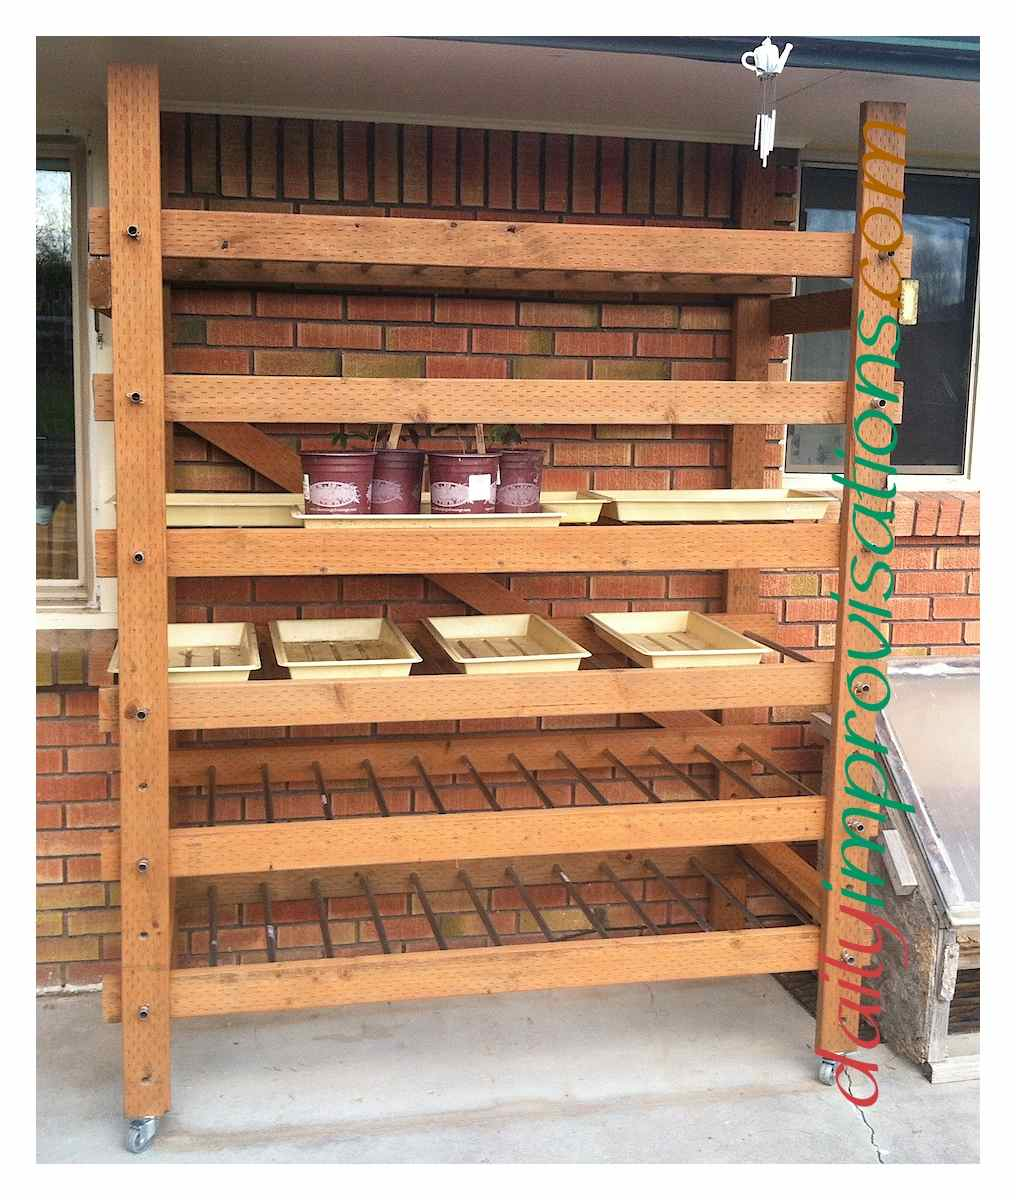 Weather Resistant Shelves For Many Trays Of Seedlings, Up Next To The House  On Our